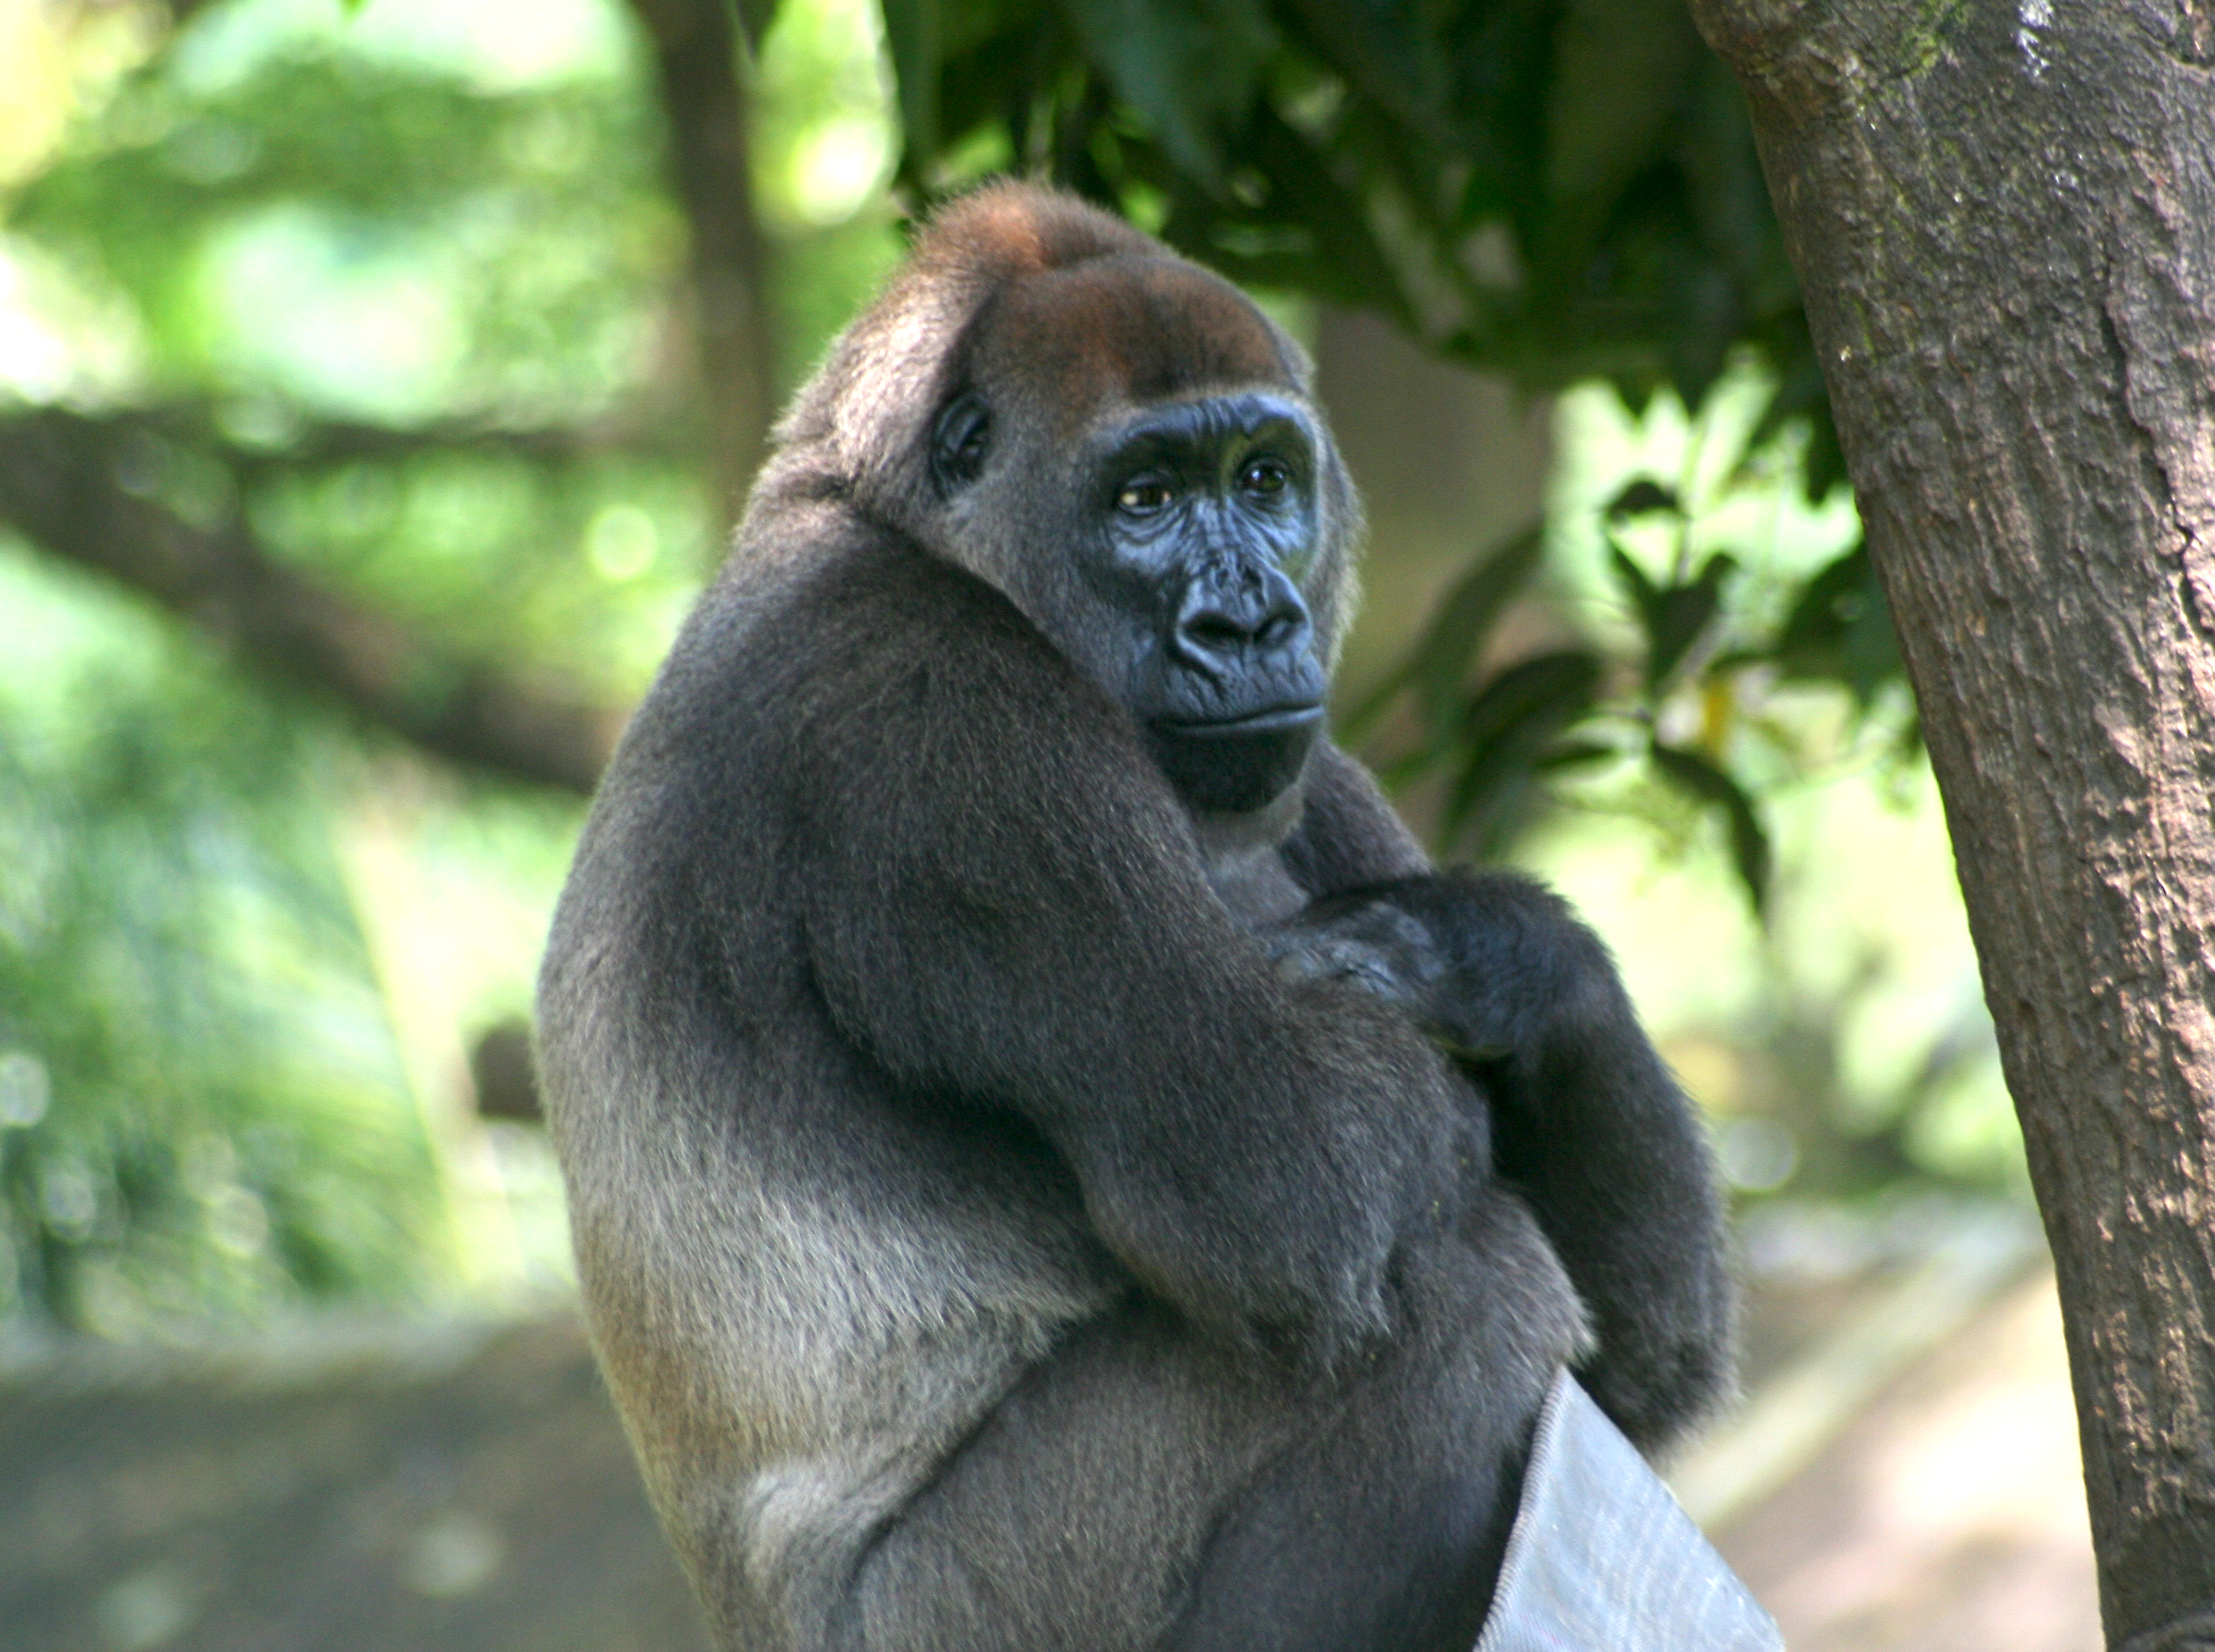 Primates suffer most from climate change